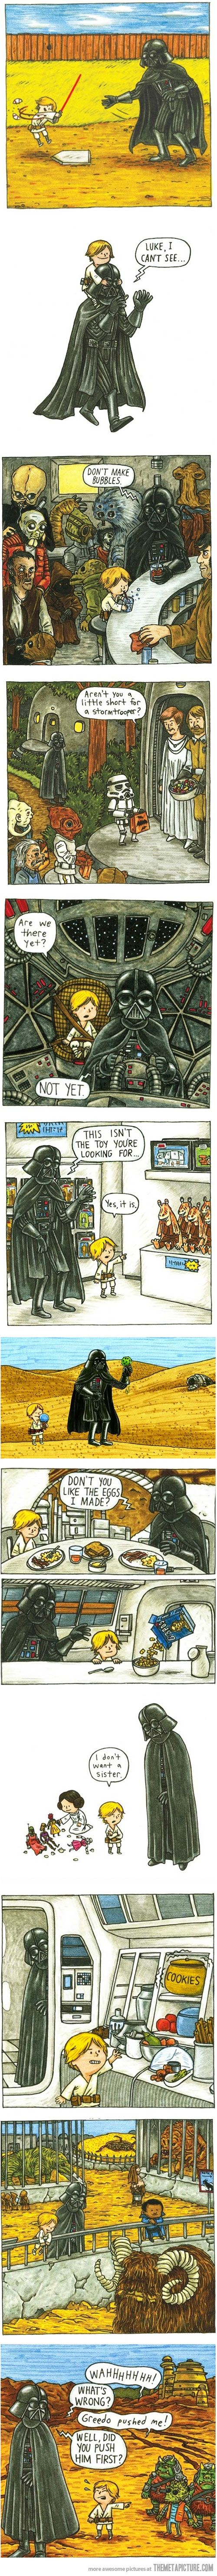 """""""IF DARTH VADER HAD BEEN A GOOD FATHER"""" Scroll back up through the pics with this in mind. Too funny . . . May the force be with you."""